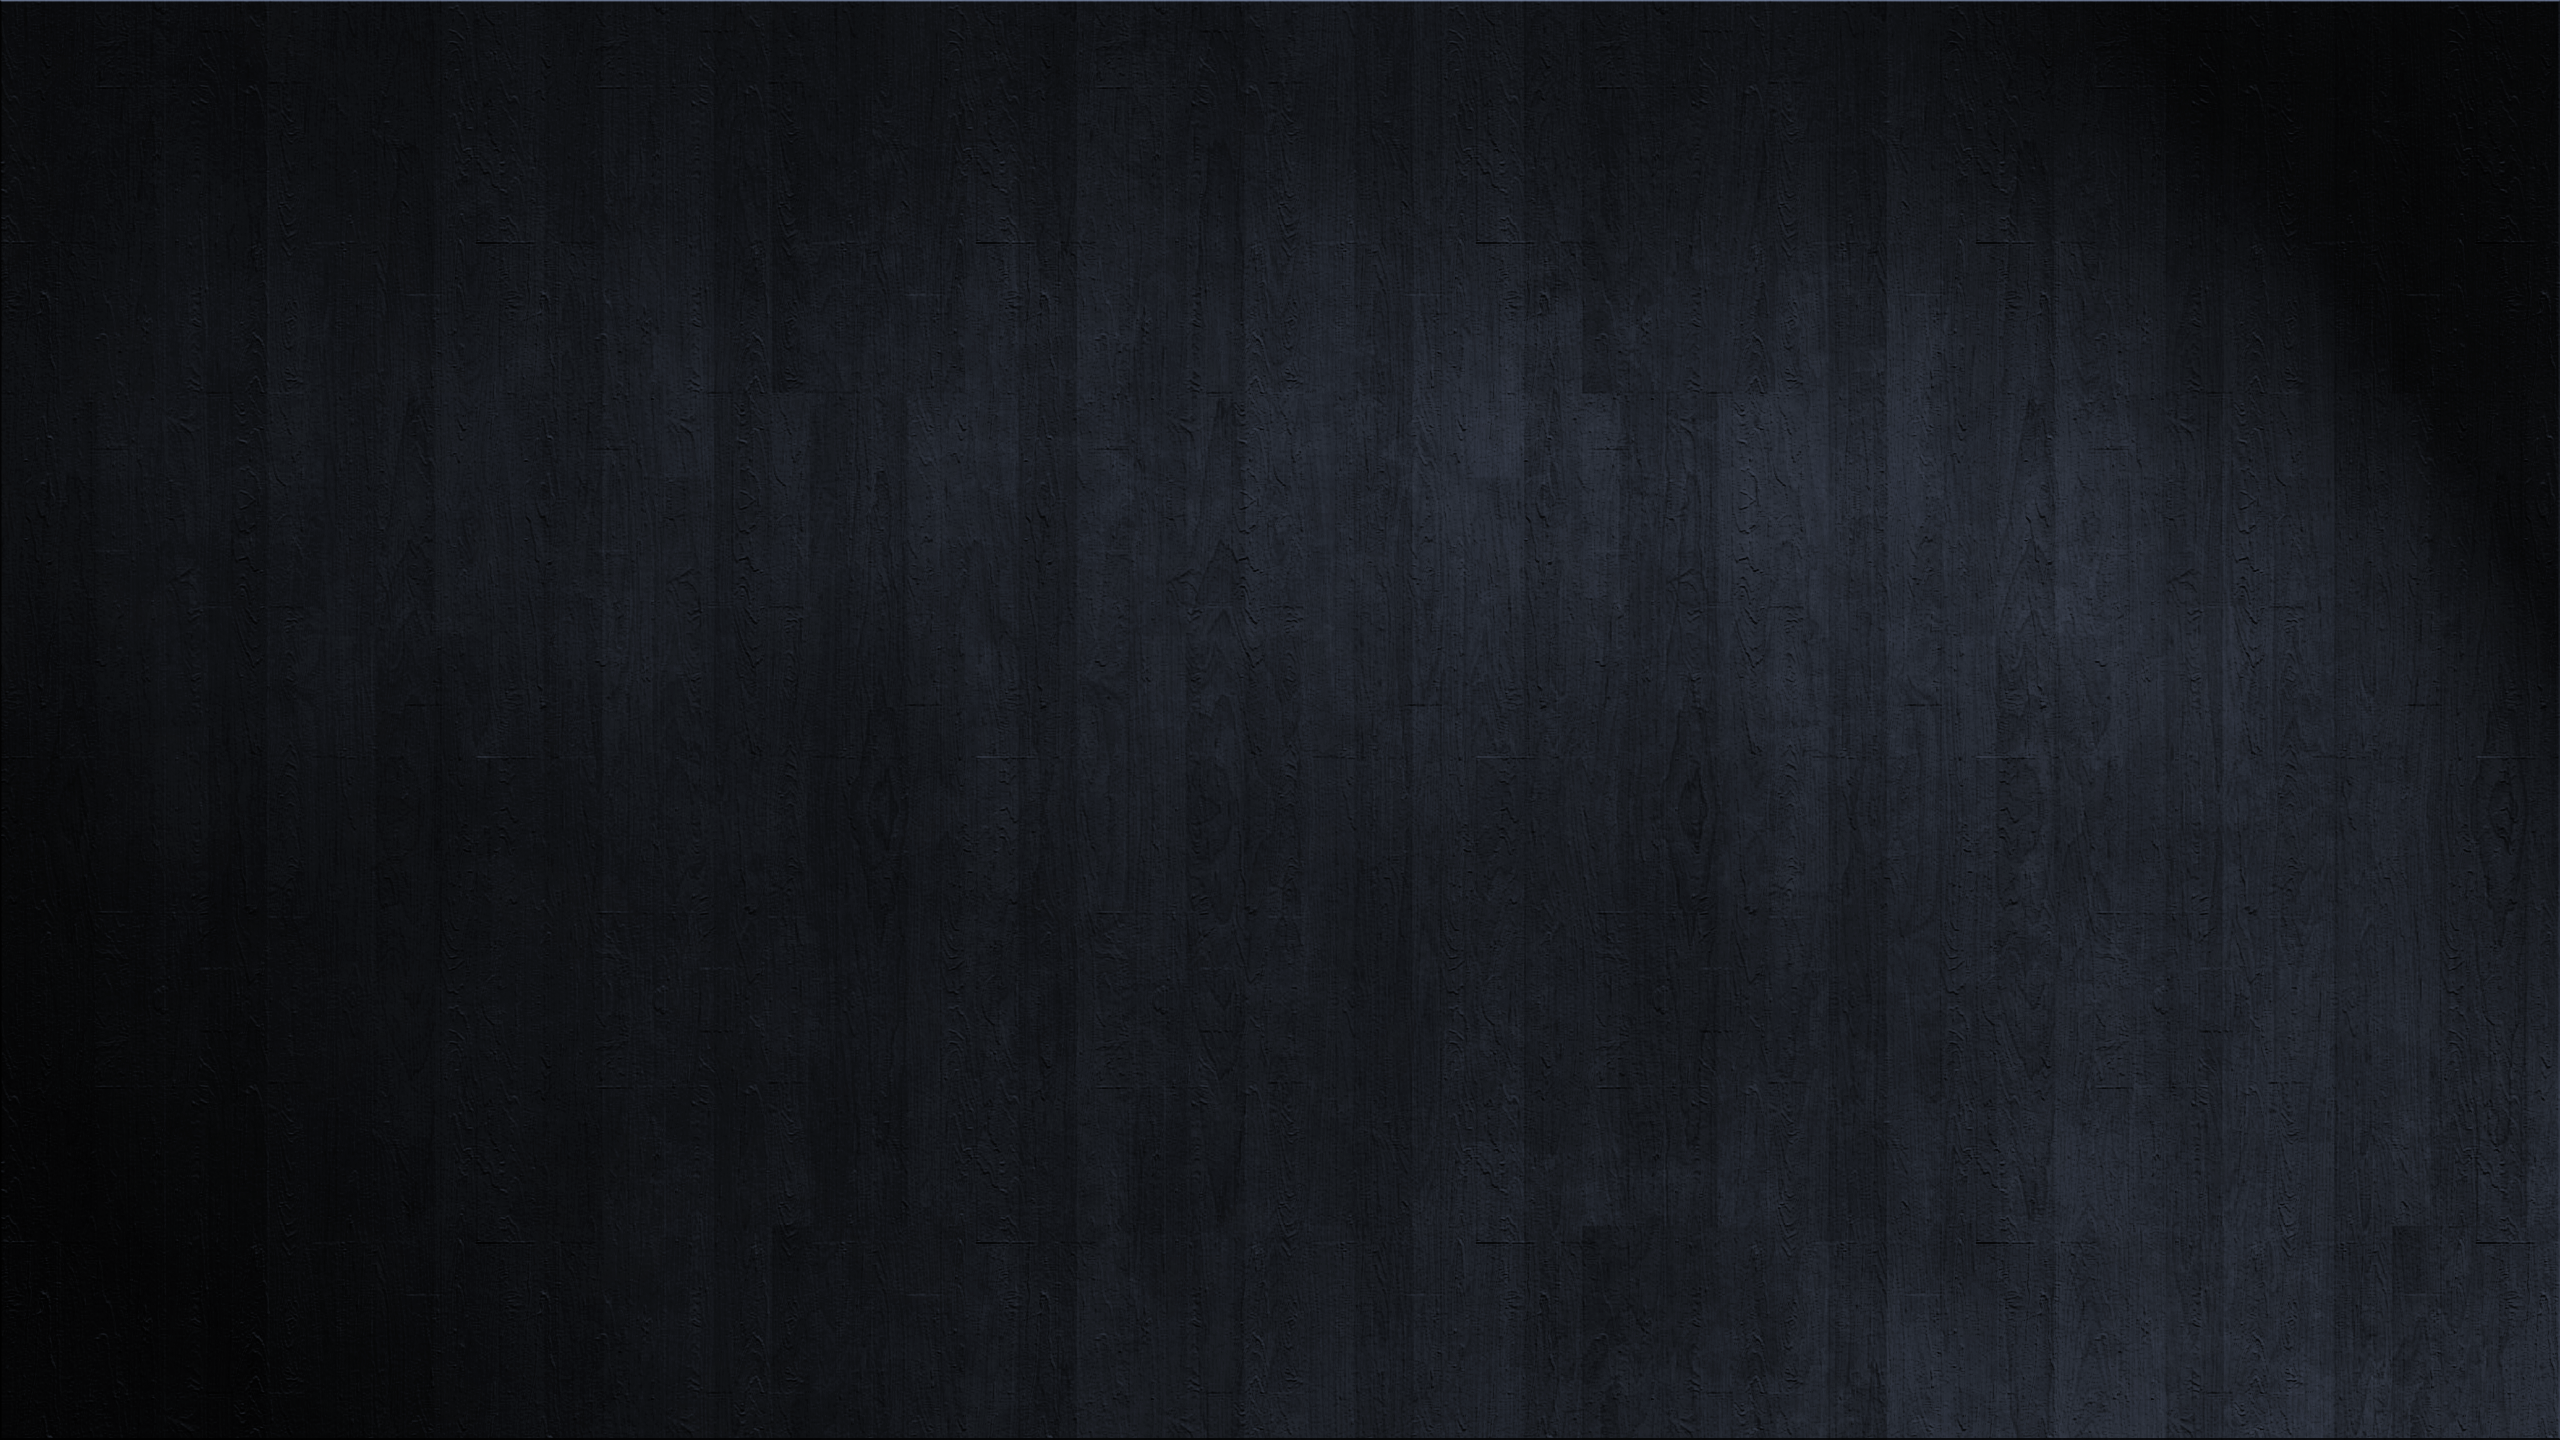 orgwallpapers05199black wood 2560x1440 wallpaper 944756png 2560x1440